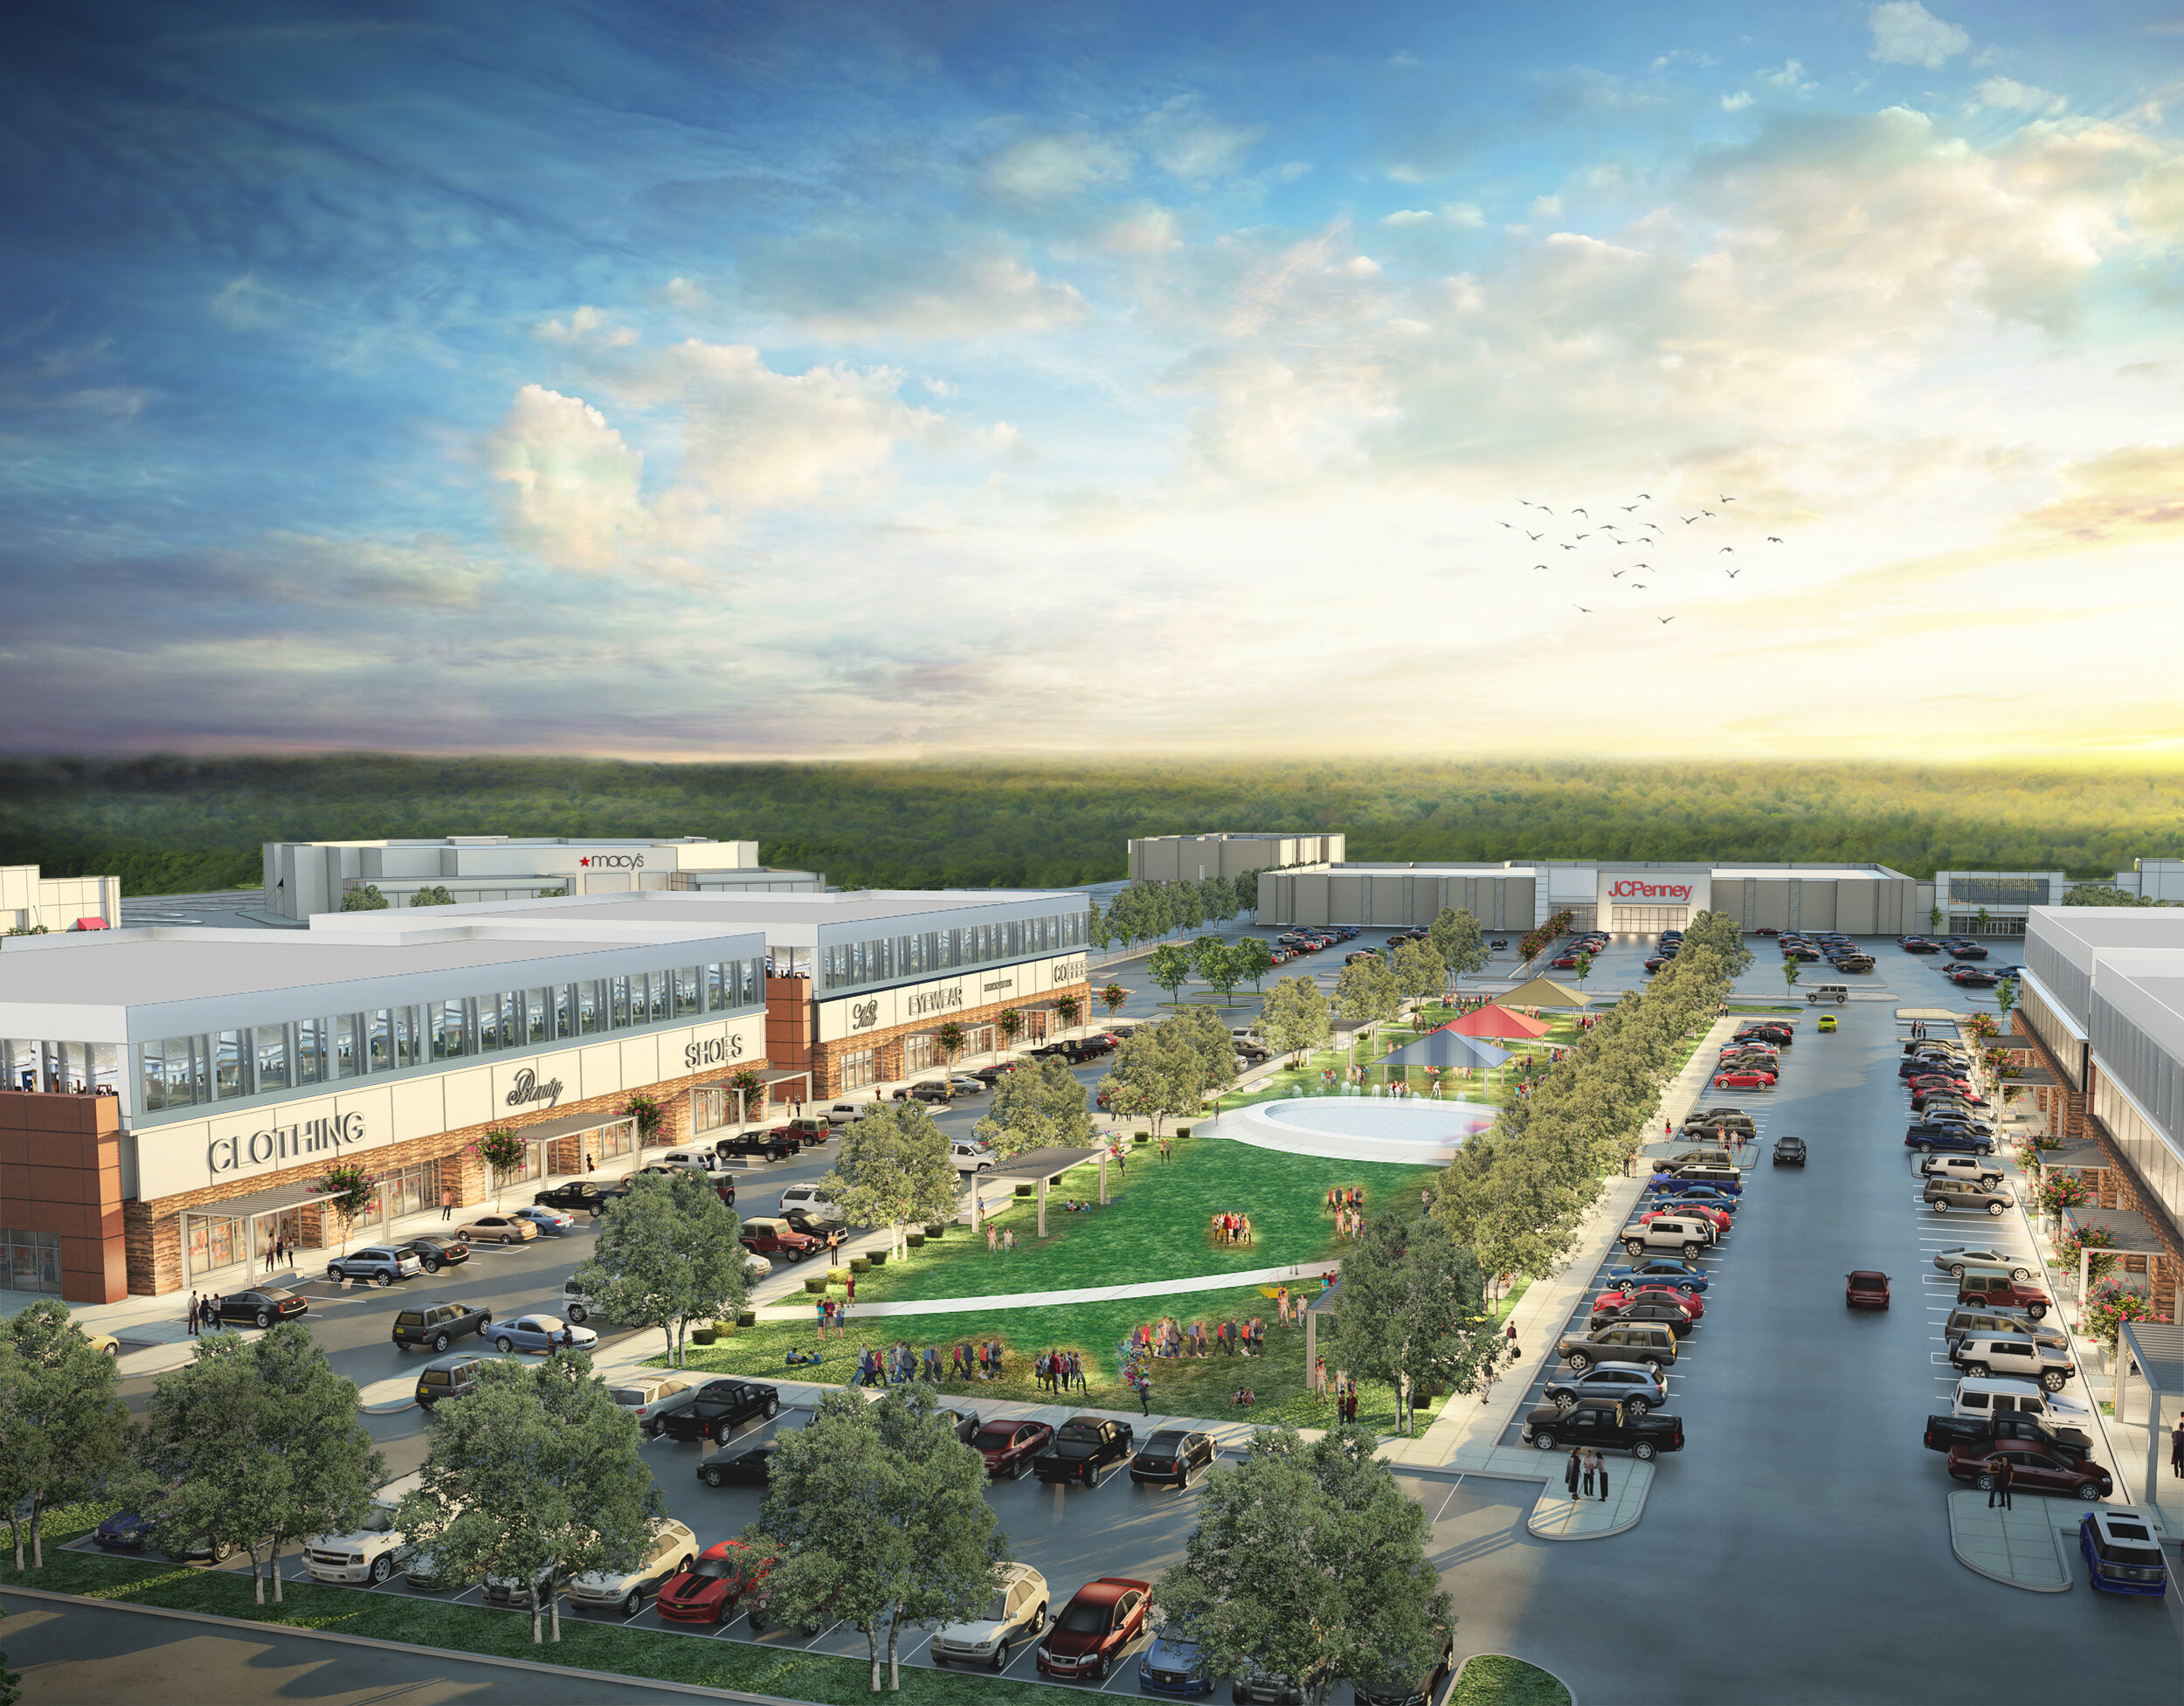 San Jacinto Mall, named after the 1836 battle that led to Texas winning its independence from Mexico, is getting transformed into an open-air district in Baytown, Texas, outside Houston. (Fidelis Realty Partners)